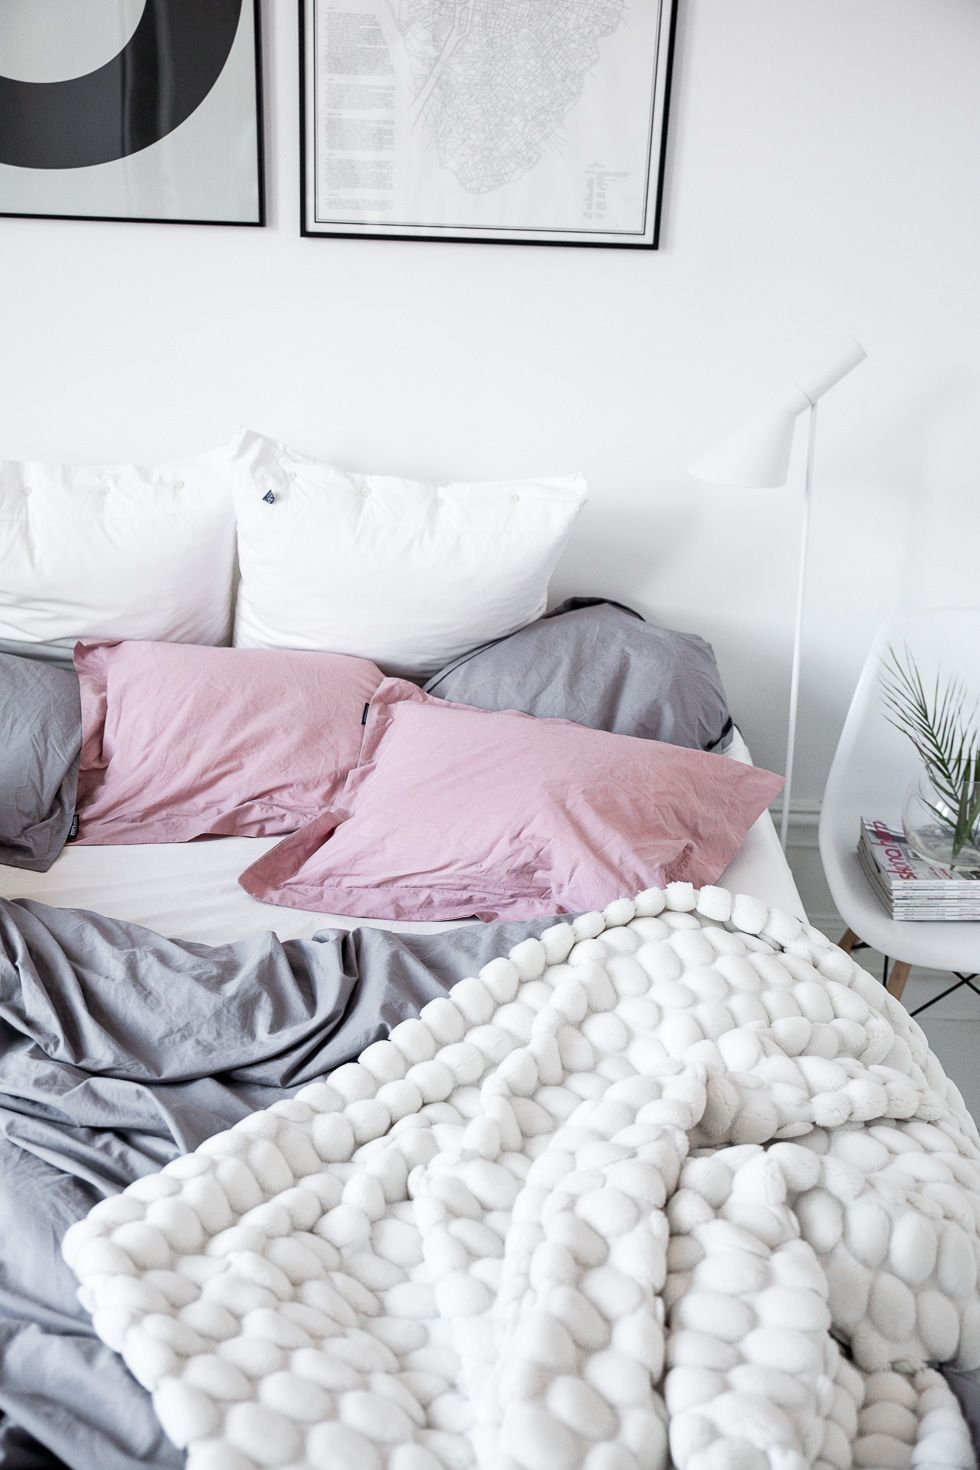 Delightful Love The Grey Blush Pink And White Sheets And Bed. Minimalist Bedrooms Are  My Favorite These Days.